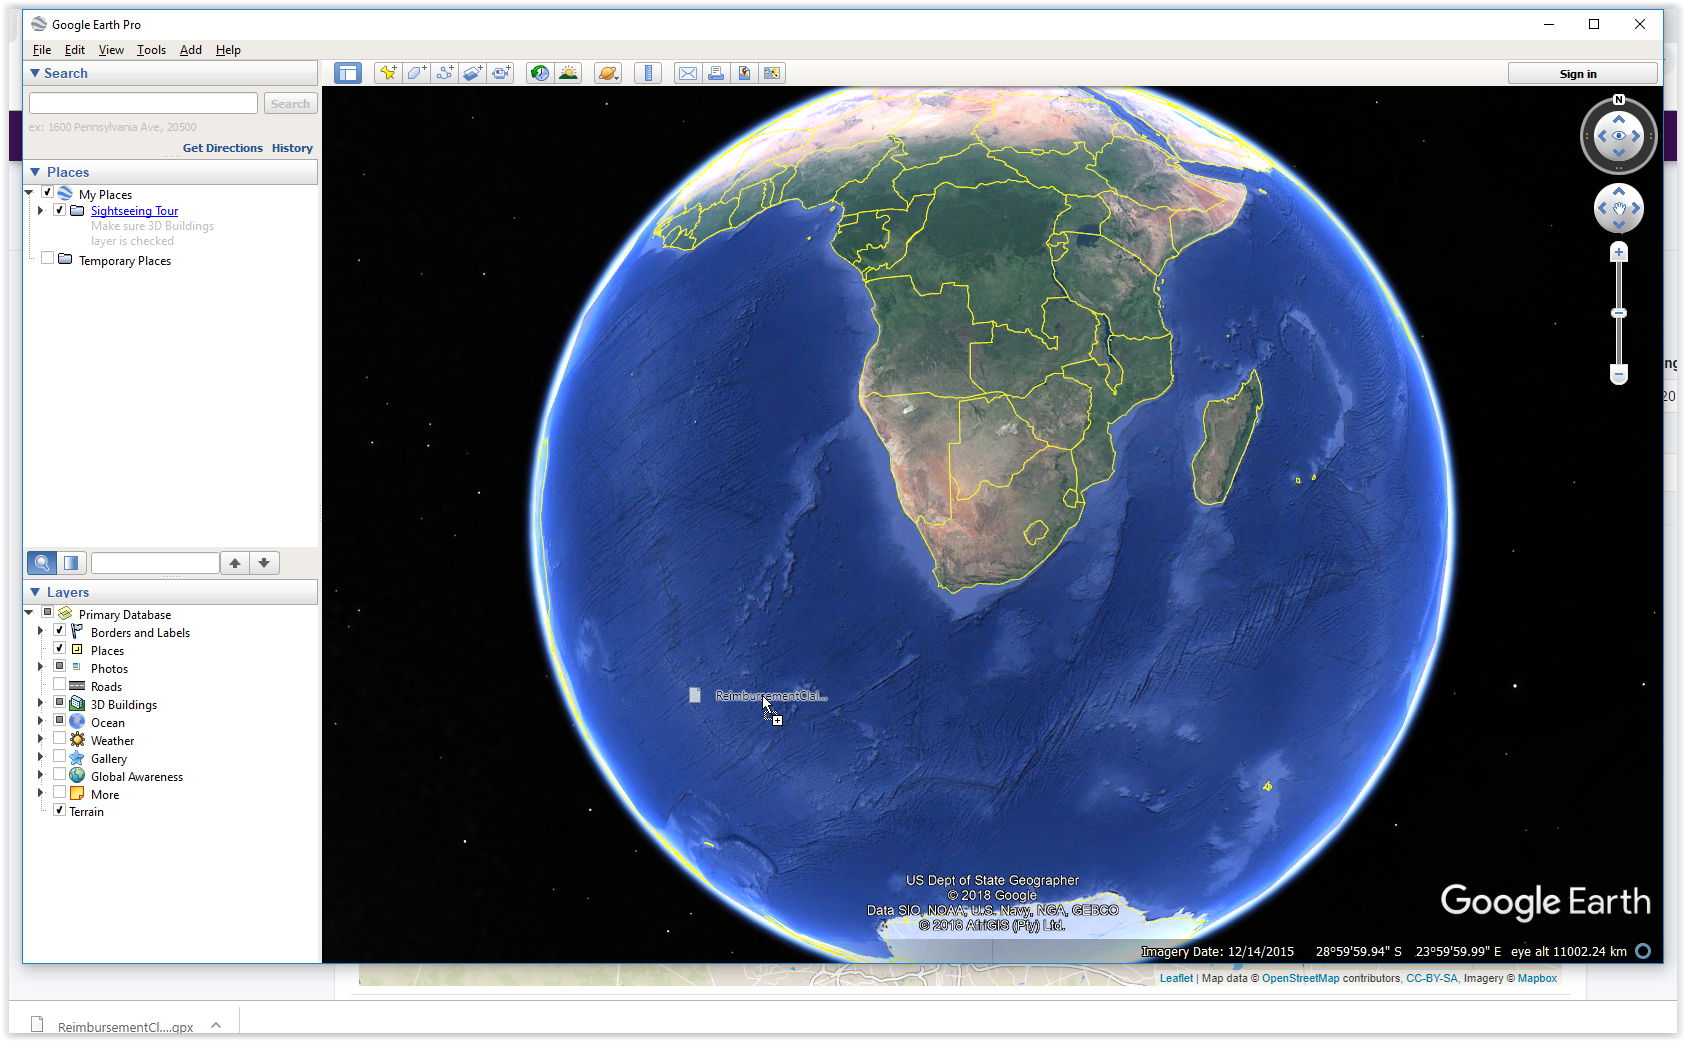 How to view my reimbursement claims in Google Earth – Skynamo